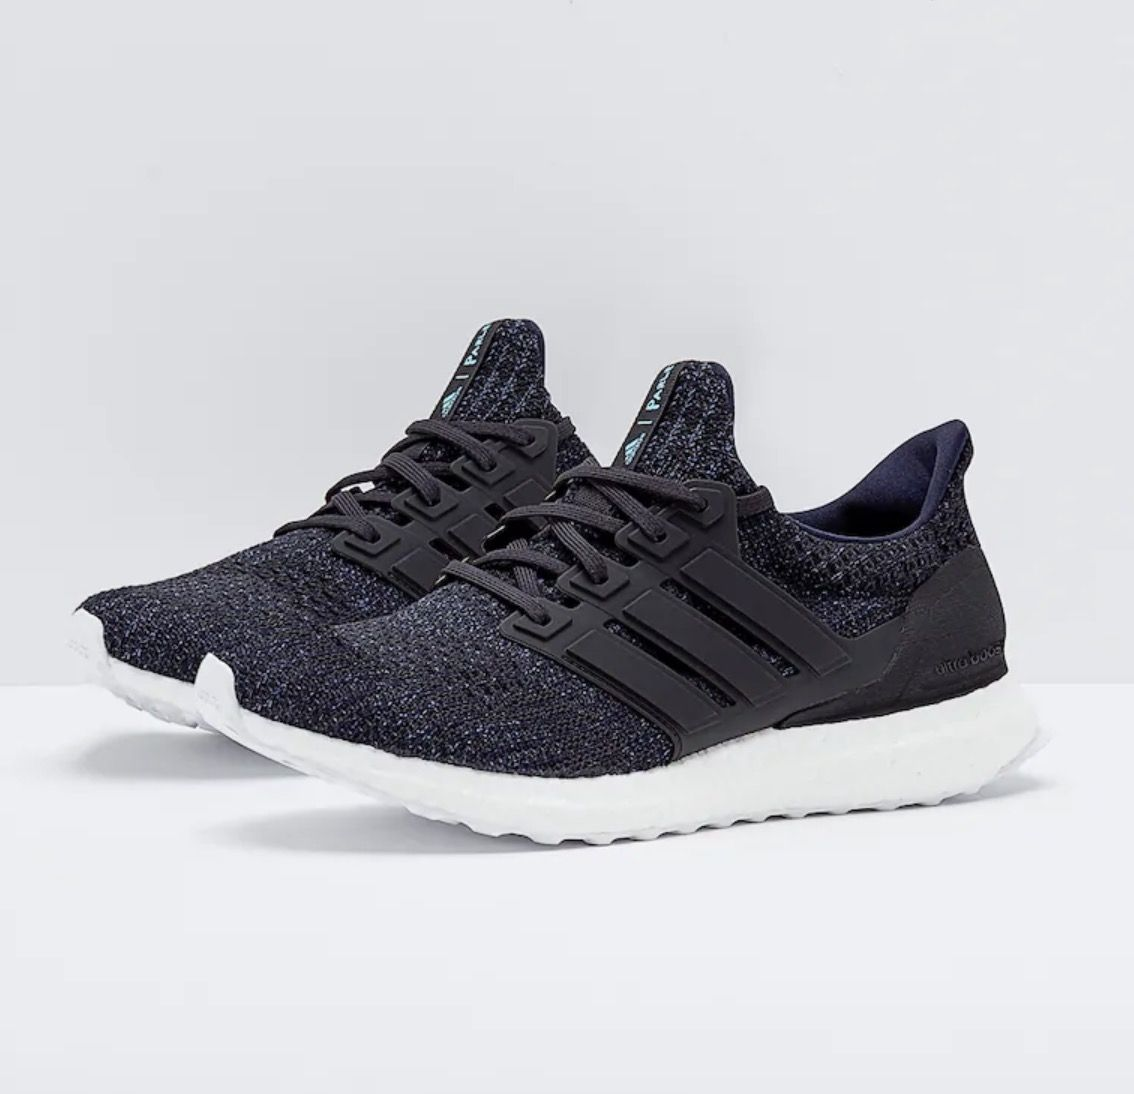 How to save up to 50% on Adidas Ultraboost this weekend